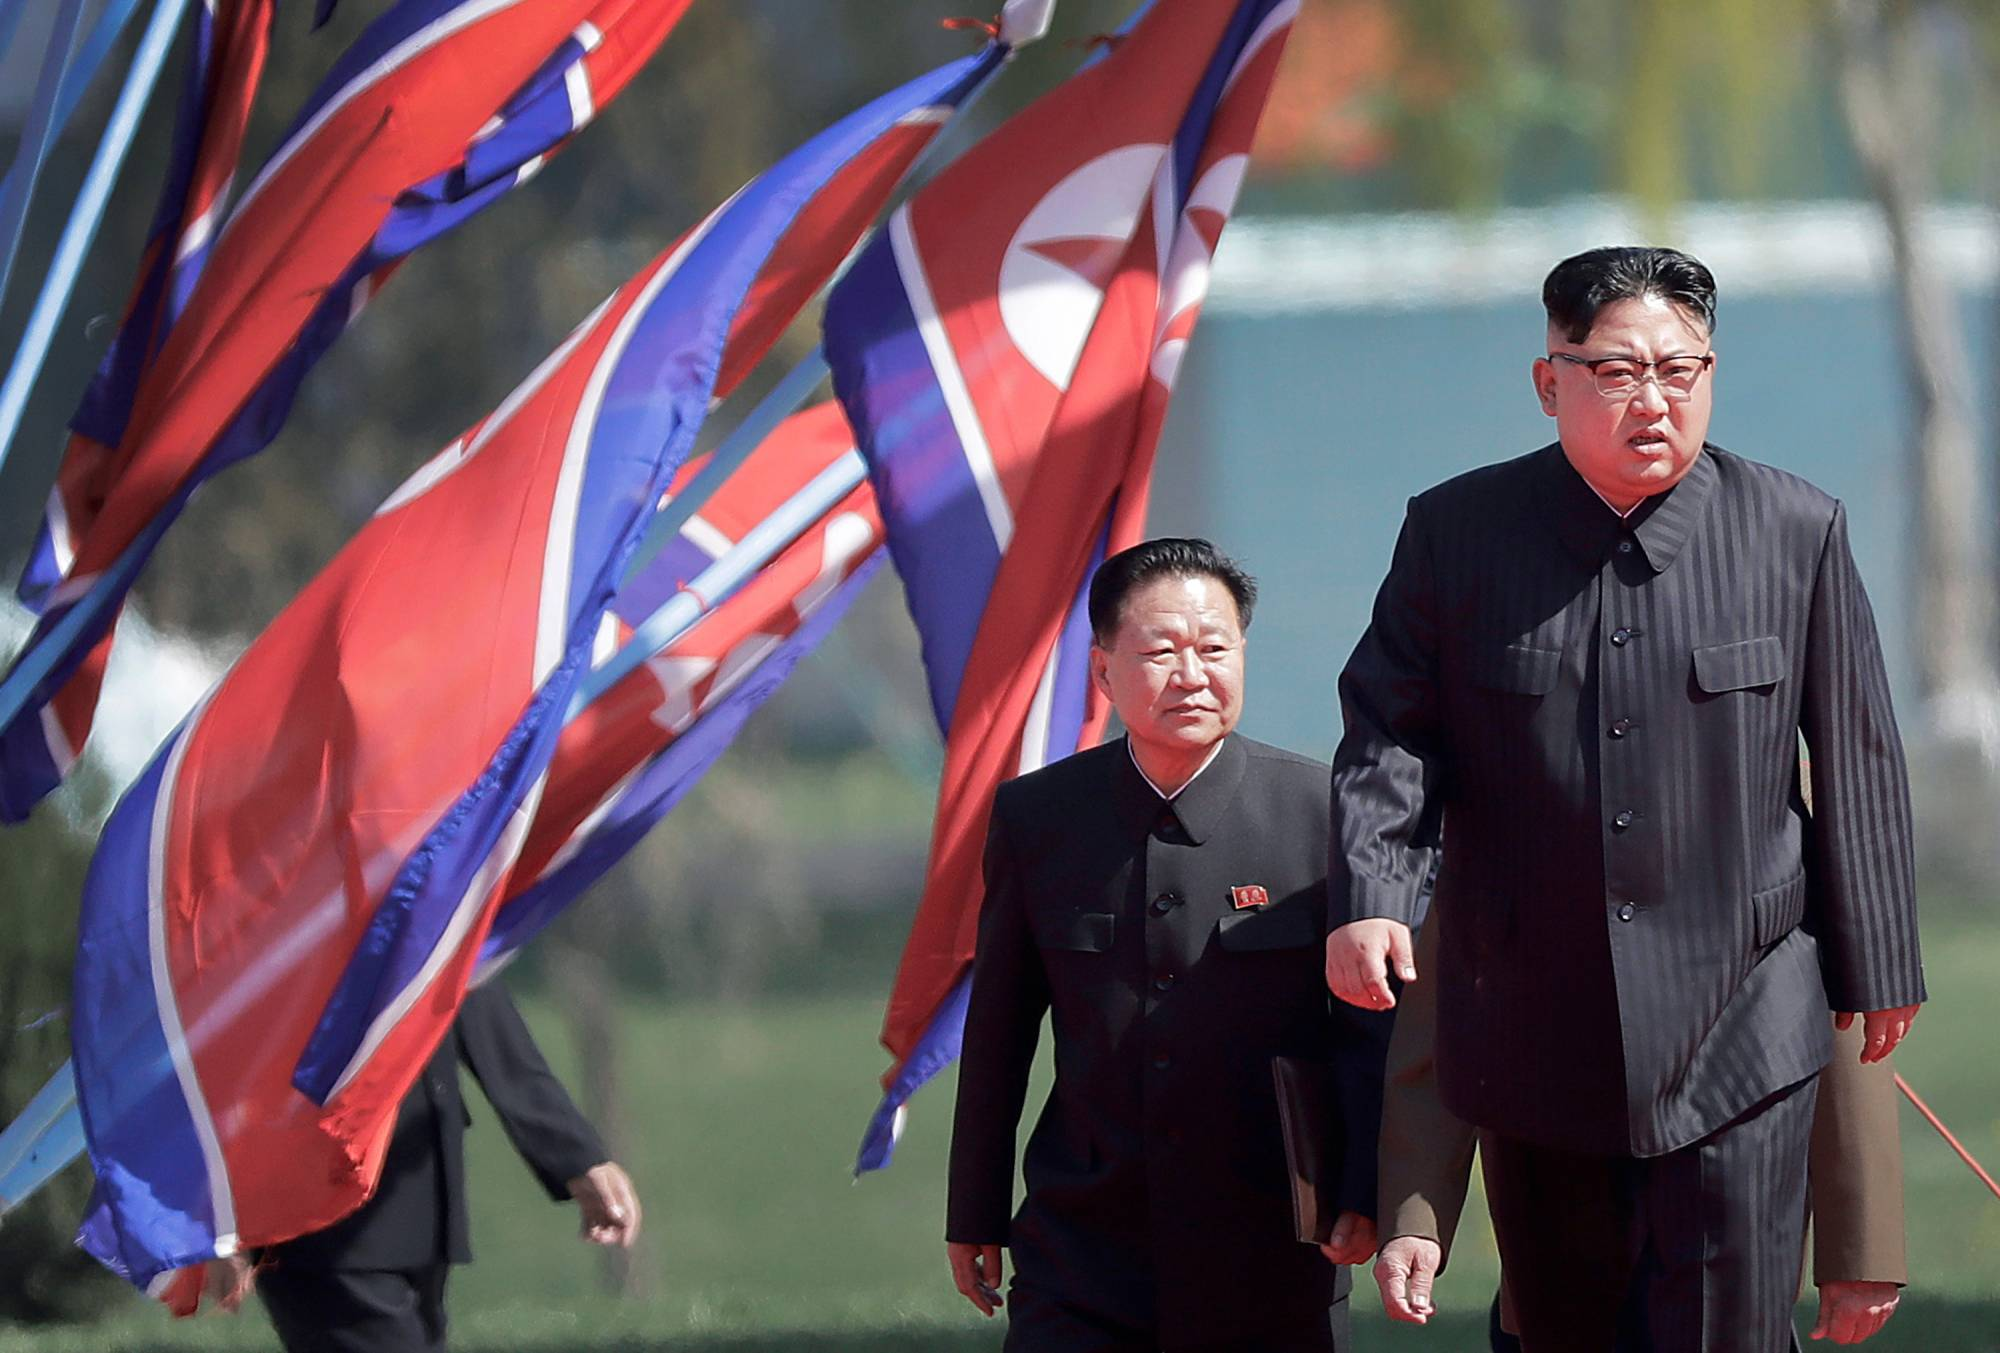 North Korean leader Kim Jong Un and Choe Ryong Hae, vice-chairman of the central committee of the Workers' Party, arrive for the official opening of the Ryomyong residential area, in Pyongyang, North Korea, on April 13. | AP